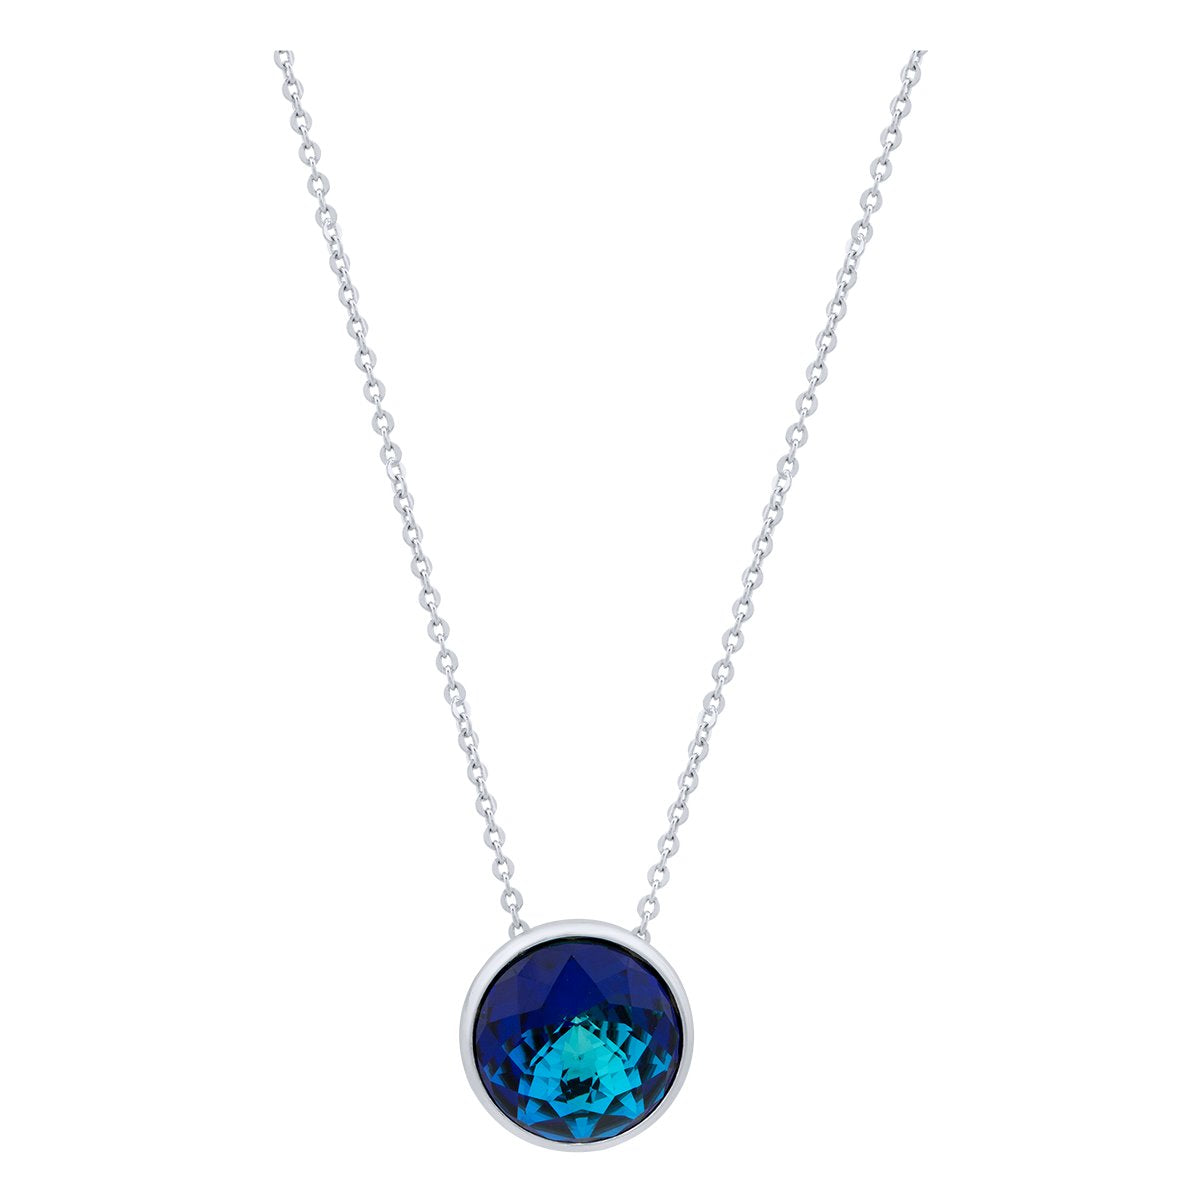 Elysees Necklace Silver Bermuda Blue JOY OF SPARKLE FOREVER CRYSTALS